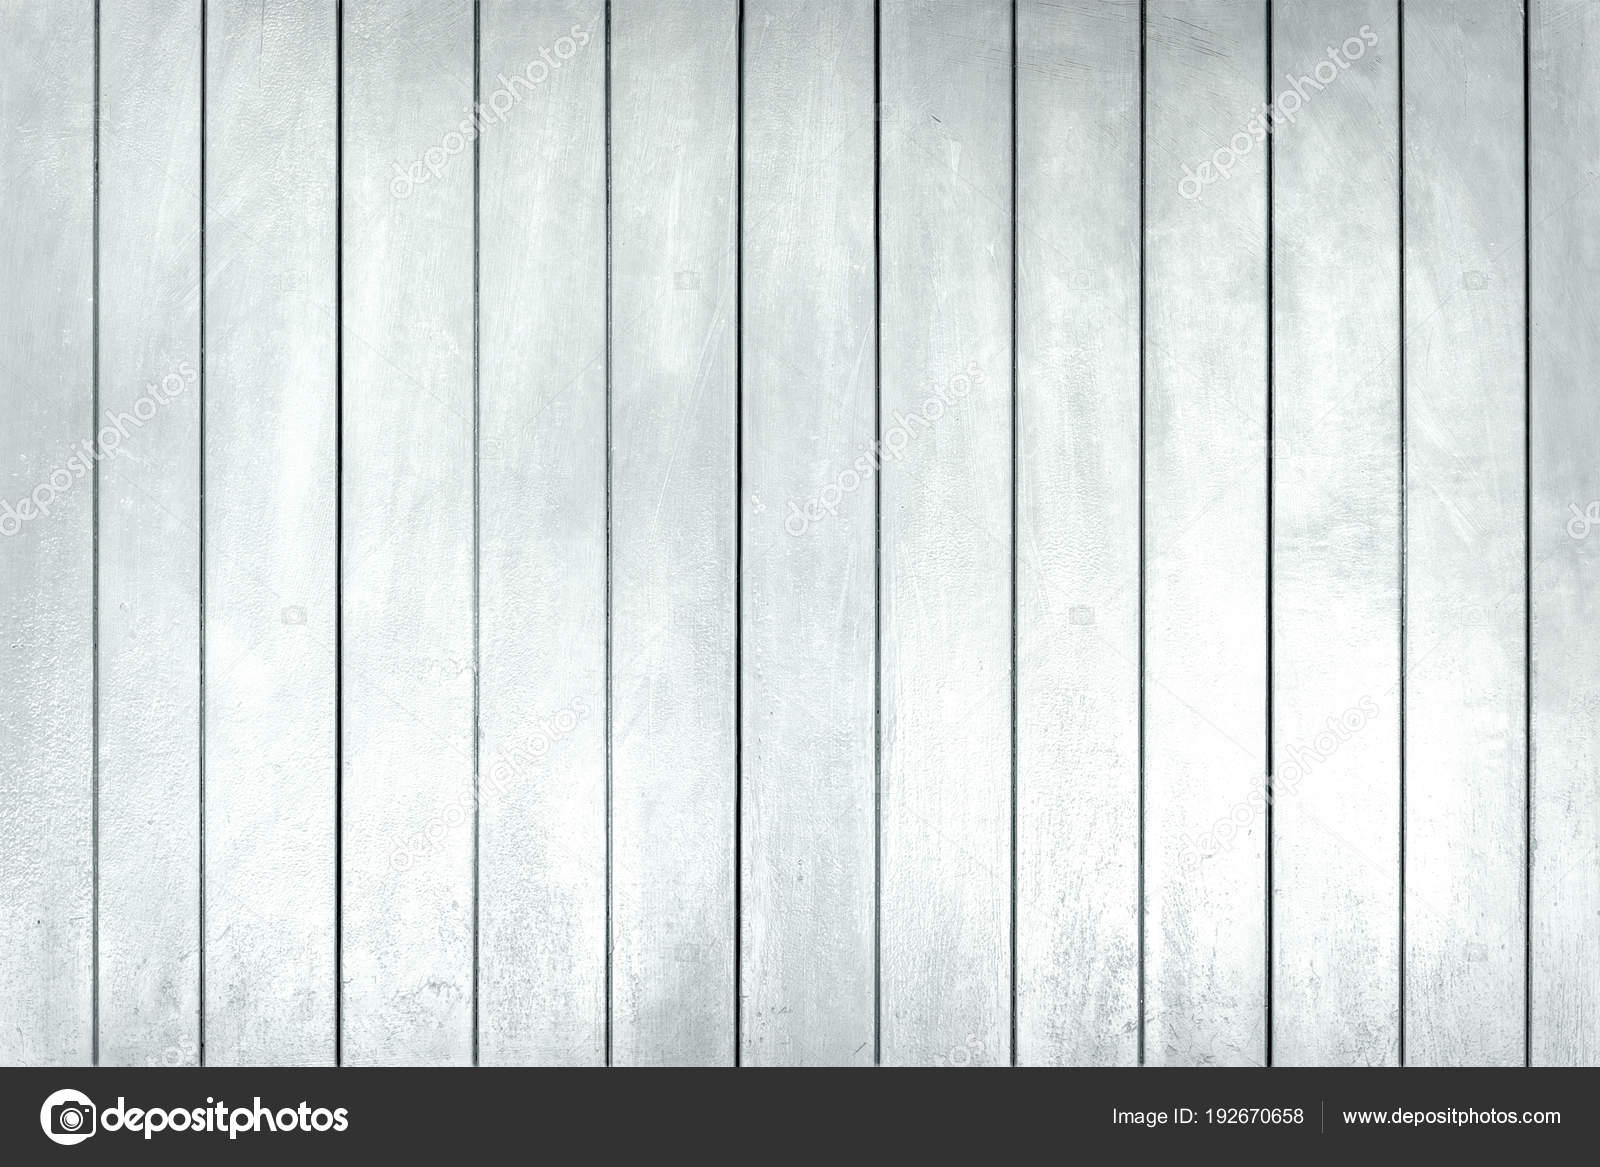 White Washed Wooden Planks Vintage Wood Wall Stock Photo